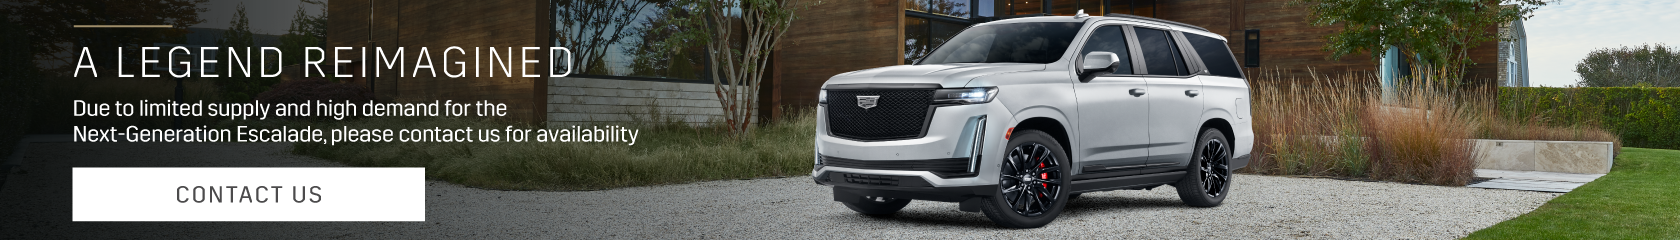 A Legend Reimagined: The redesigned 2021 Escalade has arrived. Don't hesitate; availability is limited.